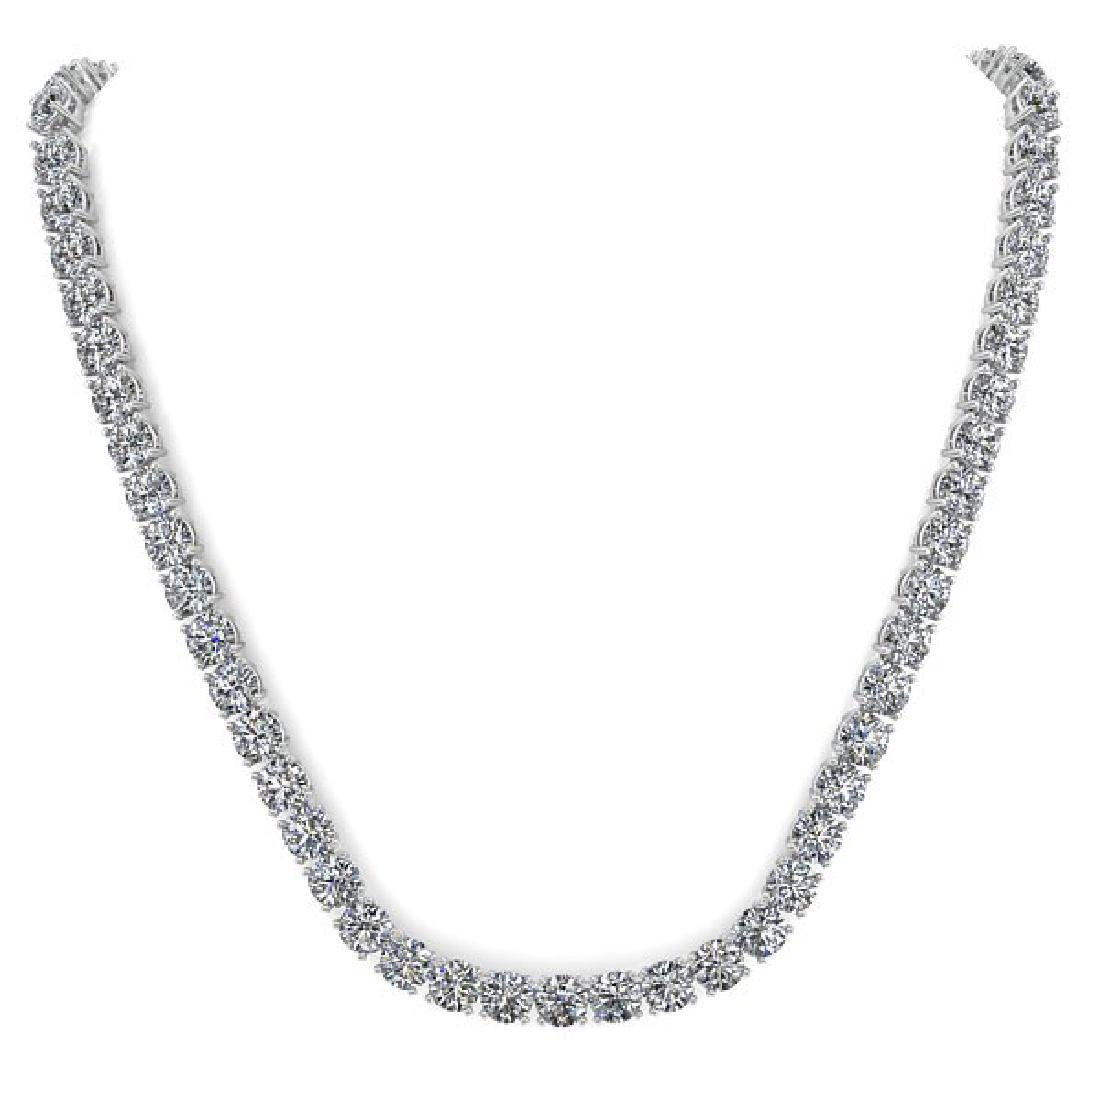 30 CTW Certified SI Diamond Necklace 18K White Gold - 3